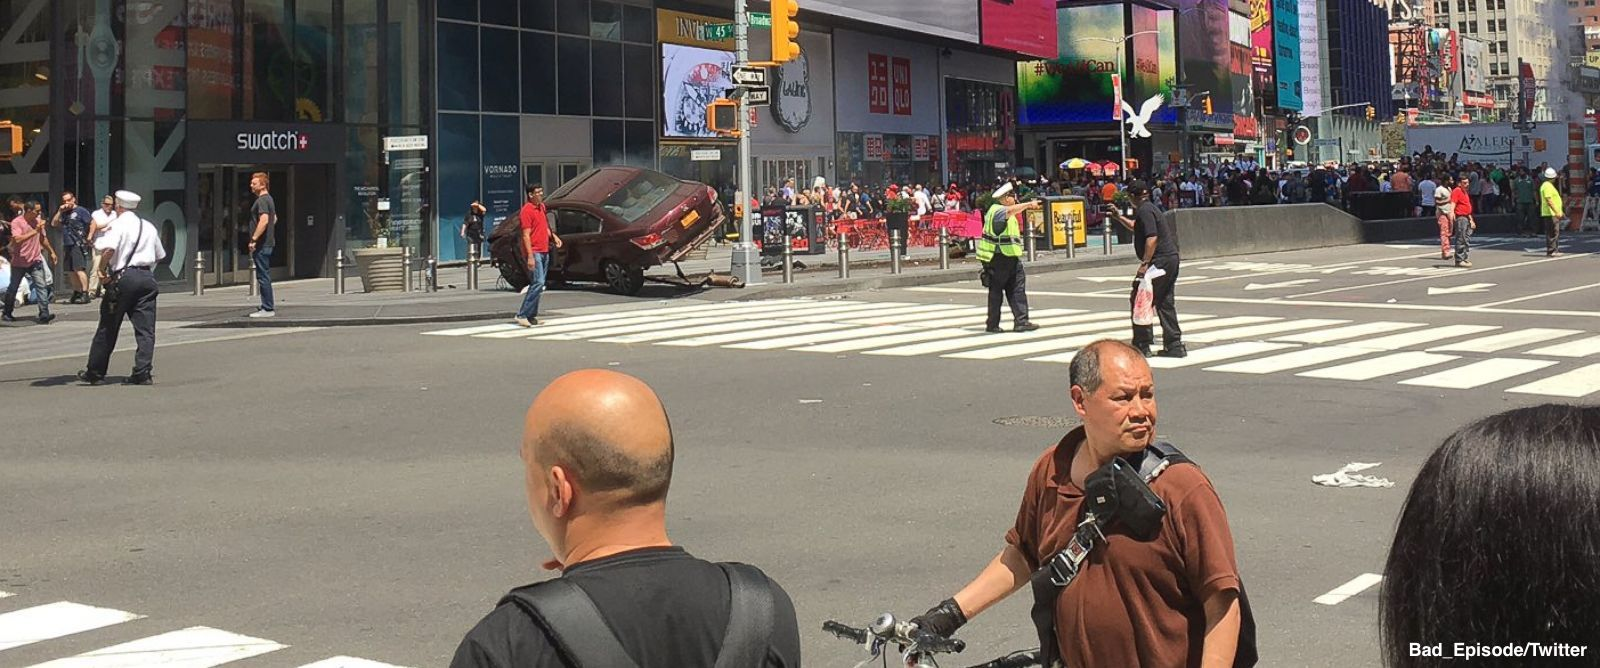 NEW: Law enforcement source says the driver in Times Square car crash is in custody:  https://t.co/8JBbOwmqo1 https://t.co/kkswkJLOL4